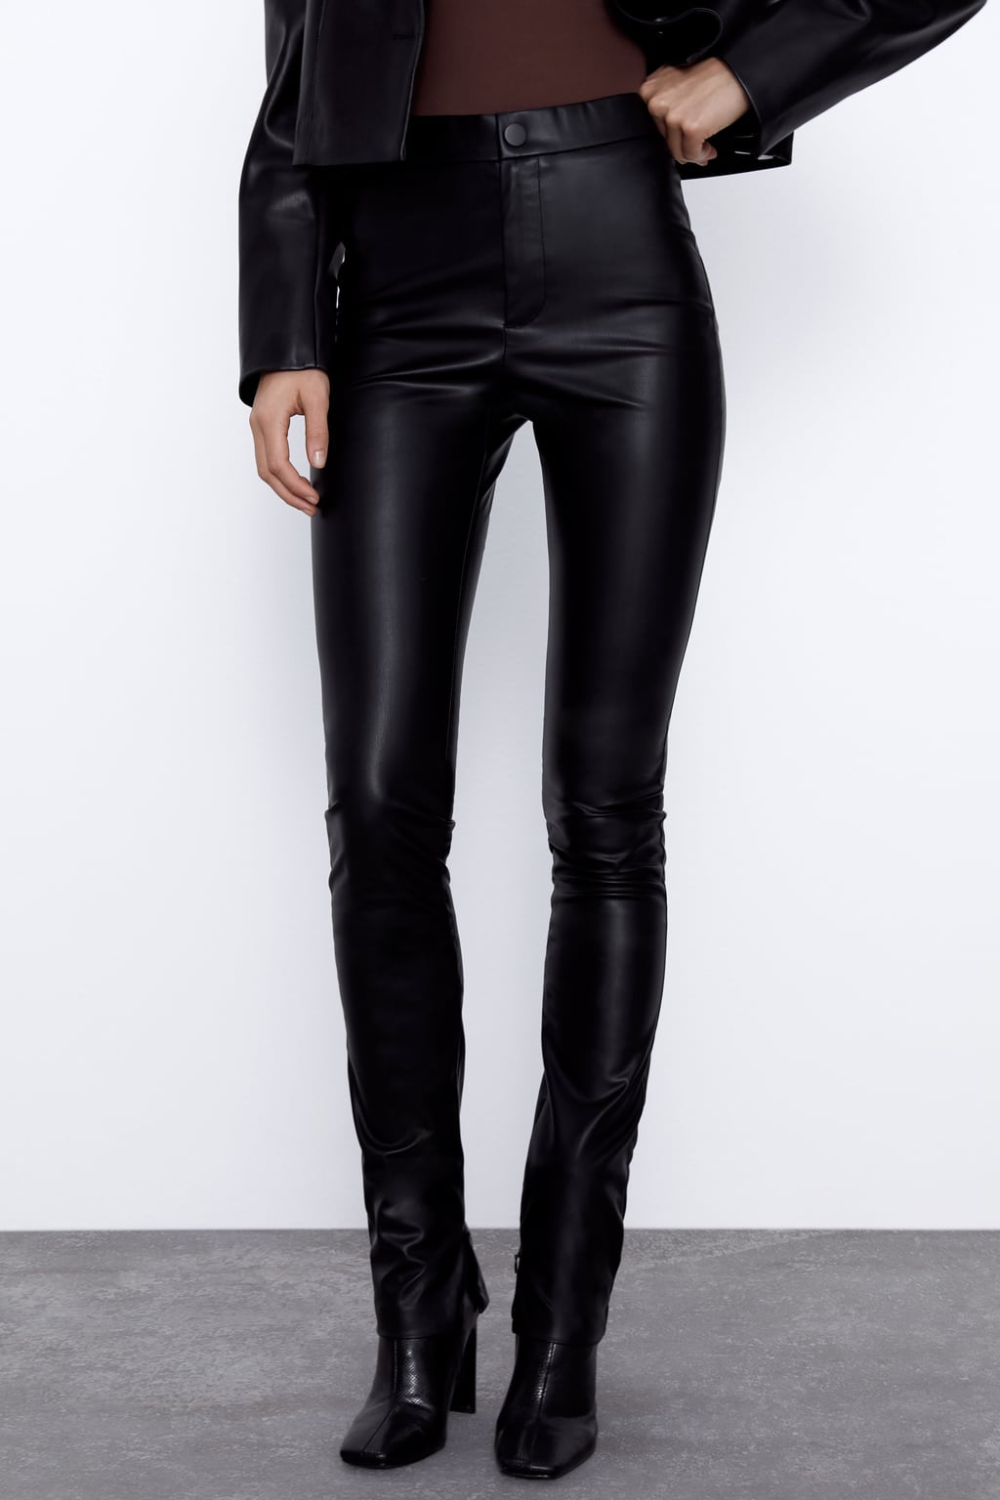 Extra Long Faux Leather Leggings Zara South Africa In 2020 Faux Leather Leggings Leather Leggings Leggings